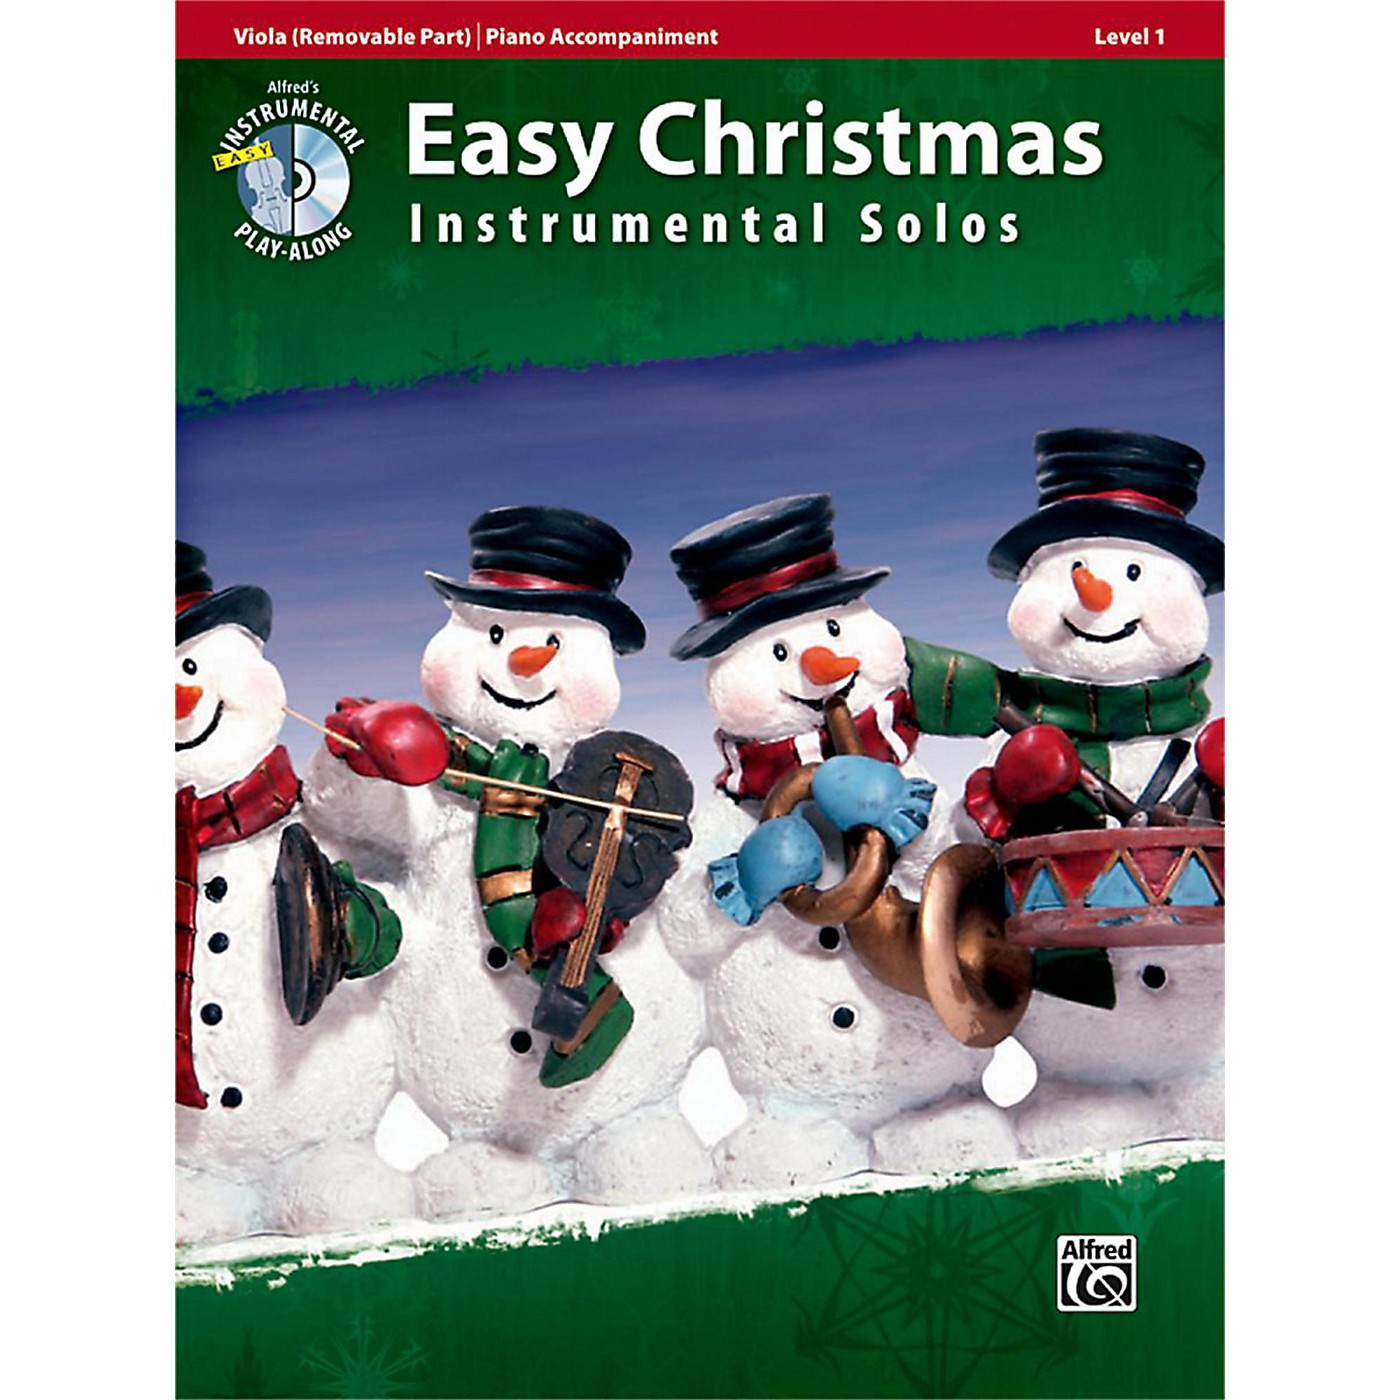 Alfred Easy Christmas Instrumental Solos Level 1 for Strings Viola Book & CD thumbnail